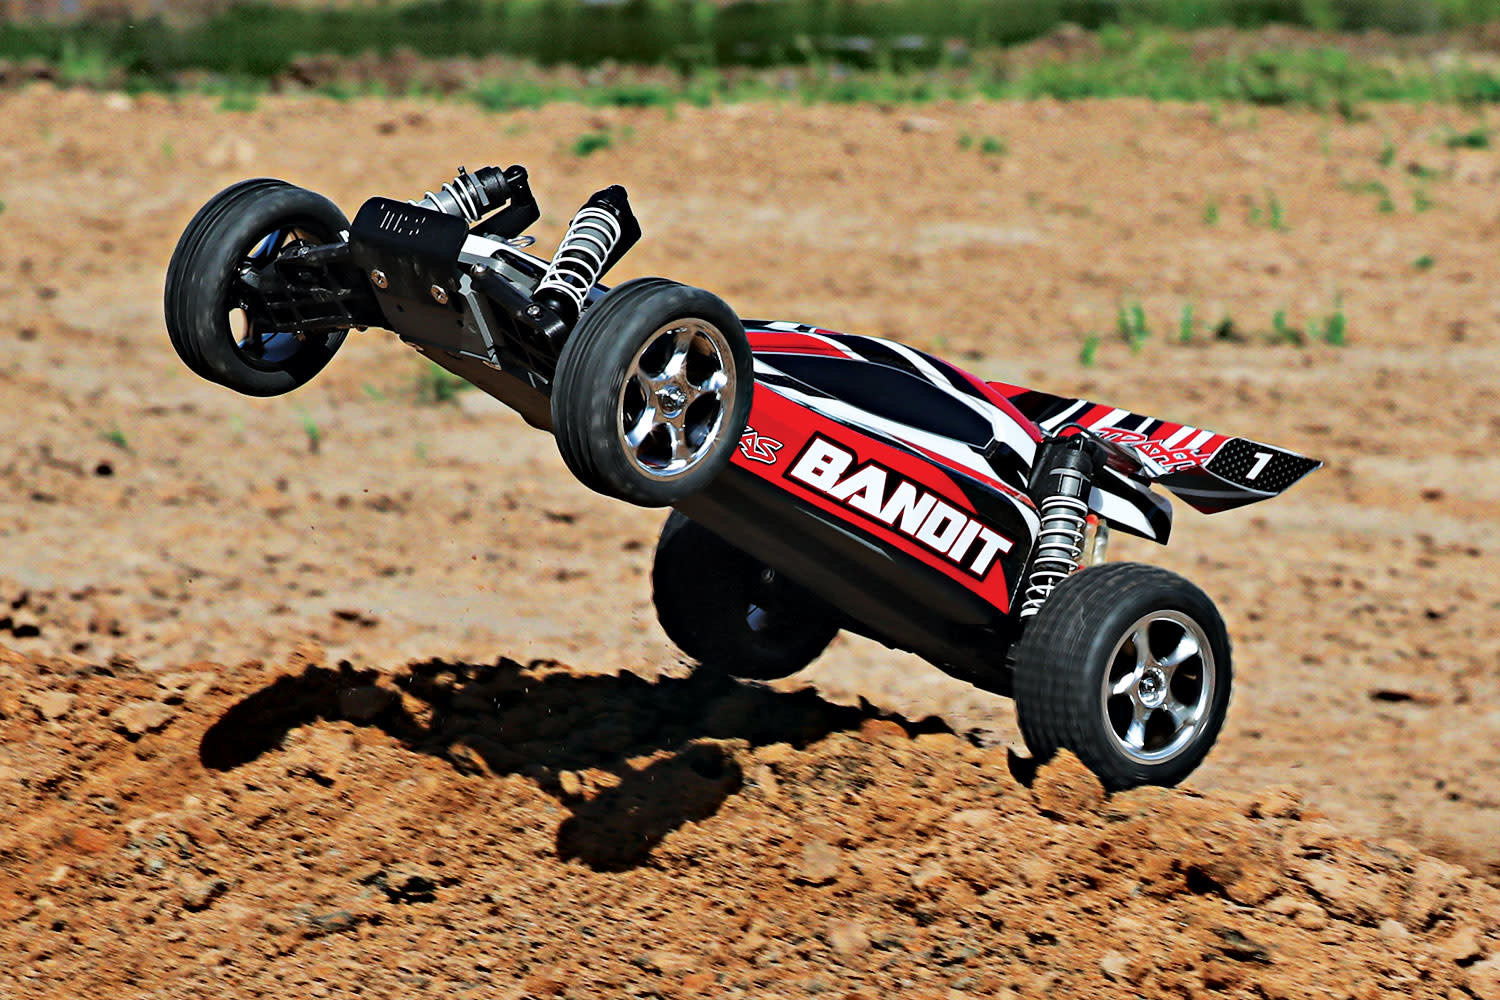 Traxxas Bandit XL-5 TQ (incl. battery/charger), Red, TRX24054-1R-7